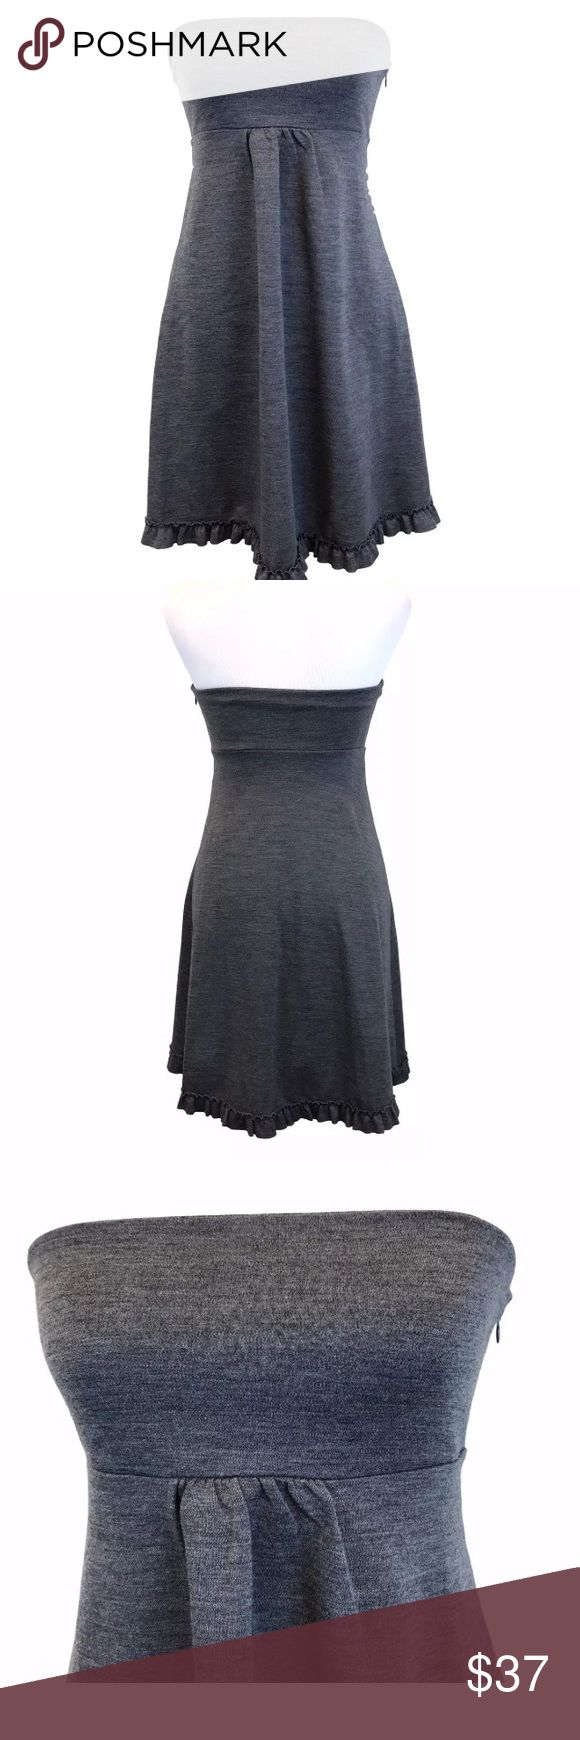 "J Crew Gray Strapless Dress Ruffle Trim Size 4 Women's J. Crew grey wool strapless empire waist dress with ruffle trim.  Size:  4 Fabric:  100% wool Bust underarm to underarm:  13"" Length in back:  27"" Condition:  Excellent J. Crew Dresses Strapless"